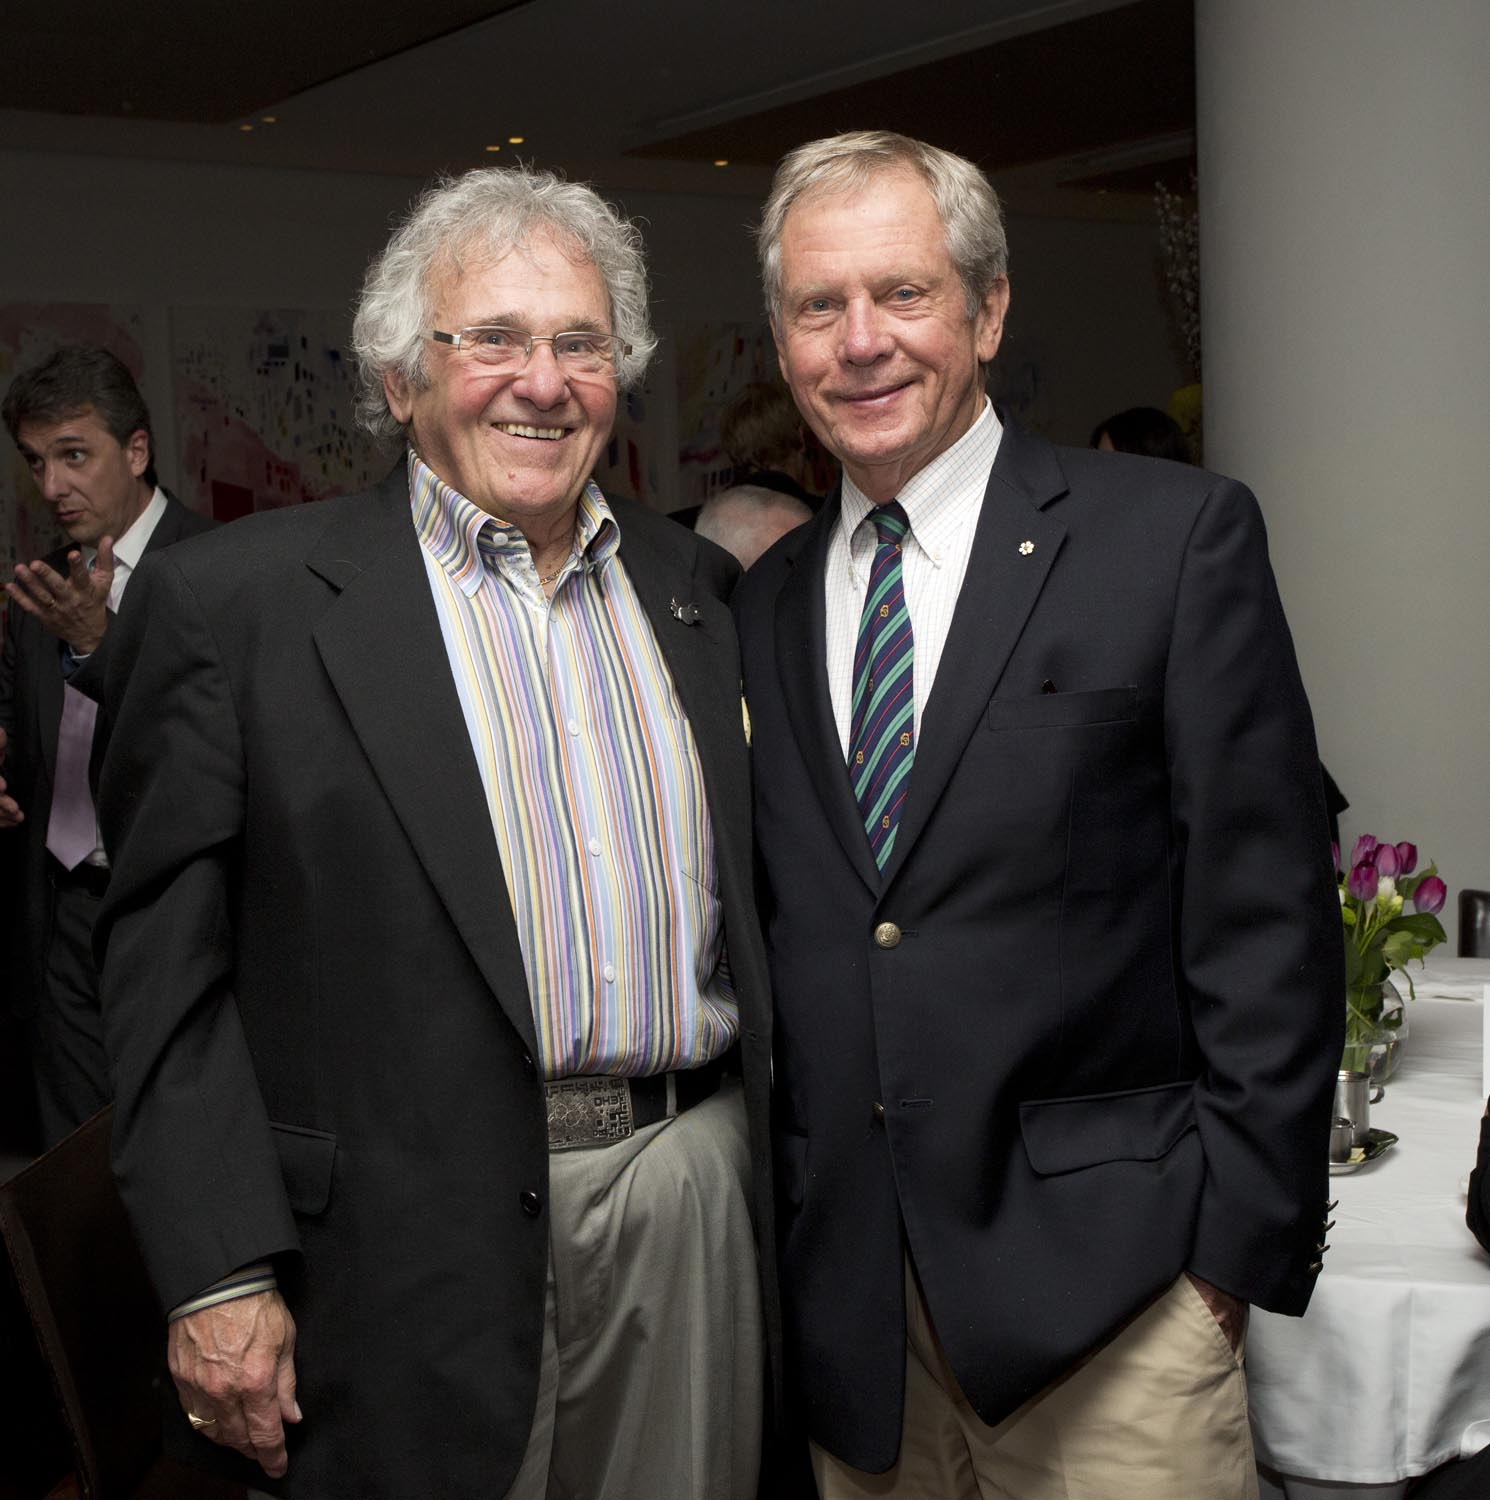 Mr. Andy Donato and Mr. Robert Bateman